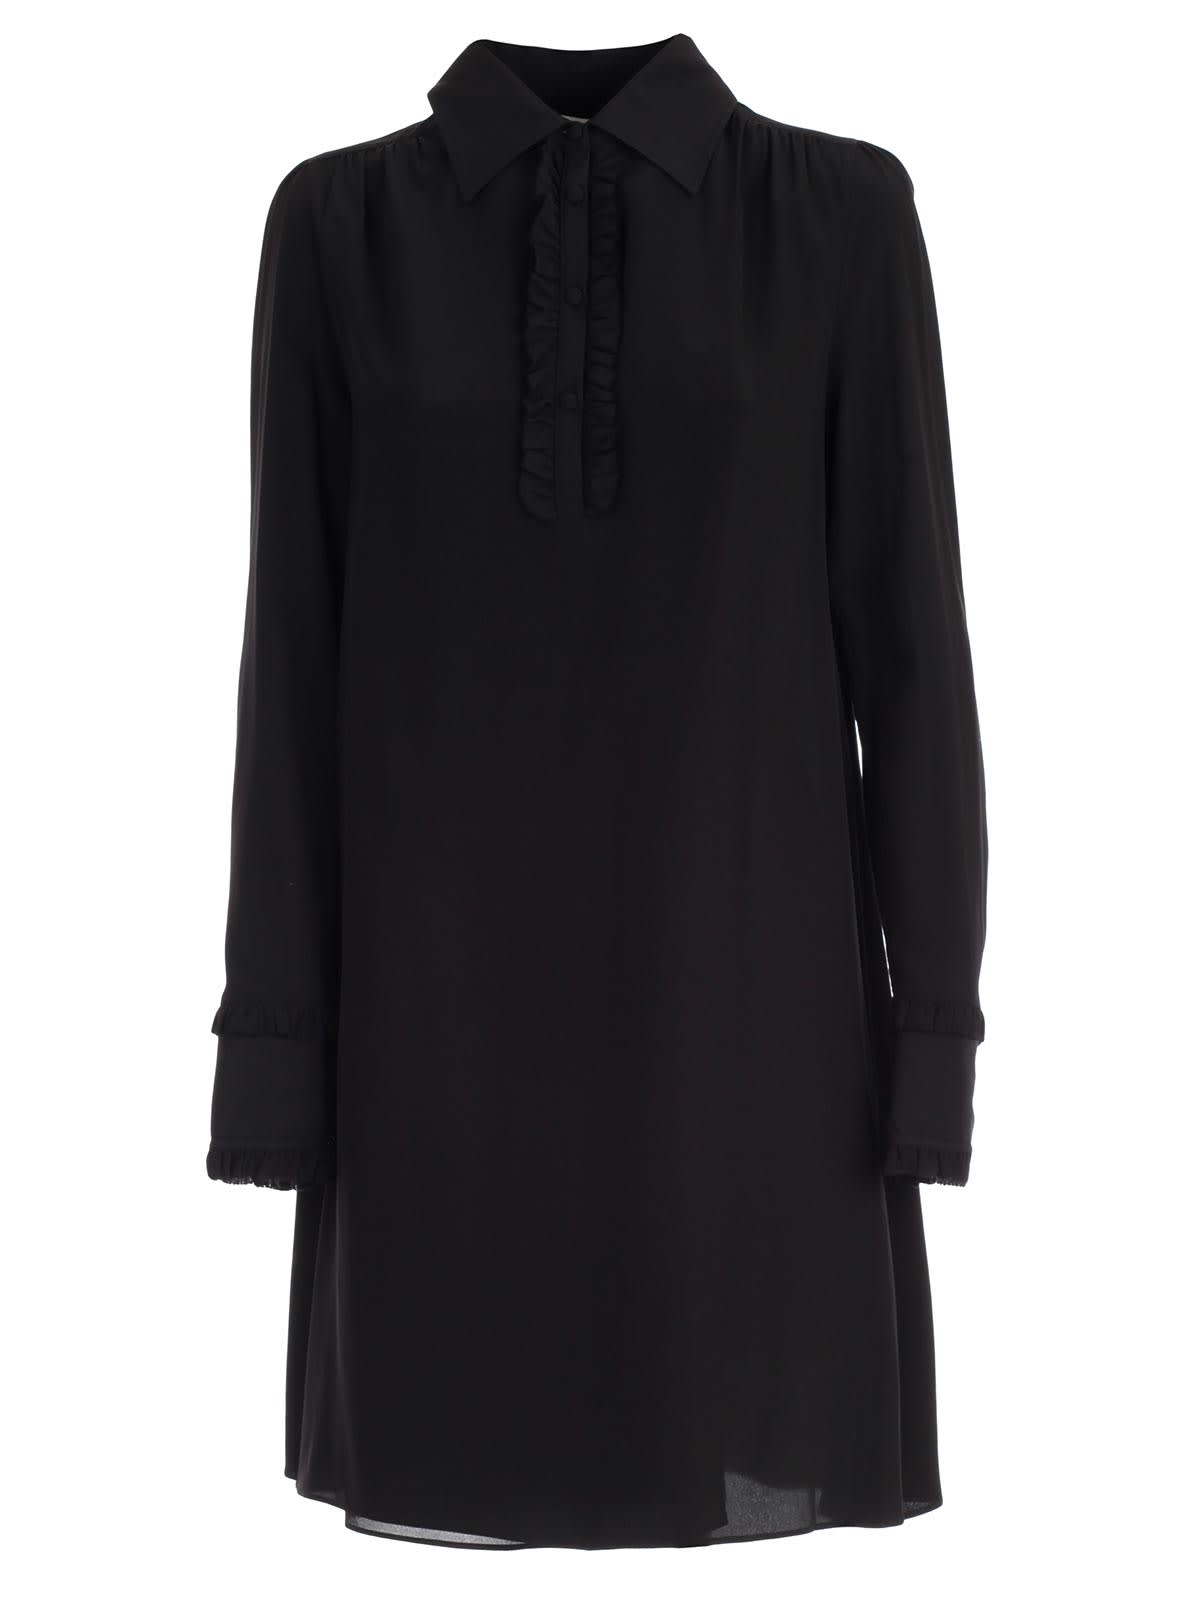 McQ Alexander McQueen Dress L & s Mini Shirt Neck W & ruflle